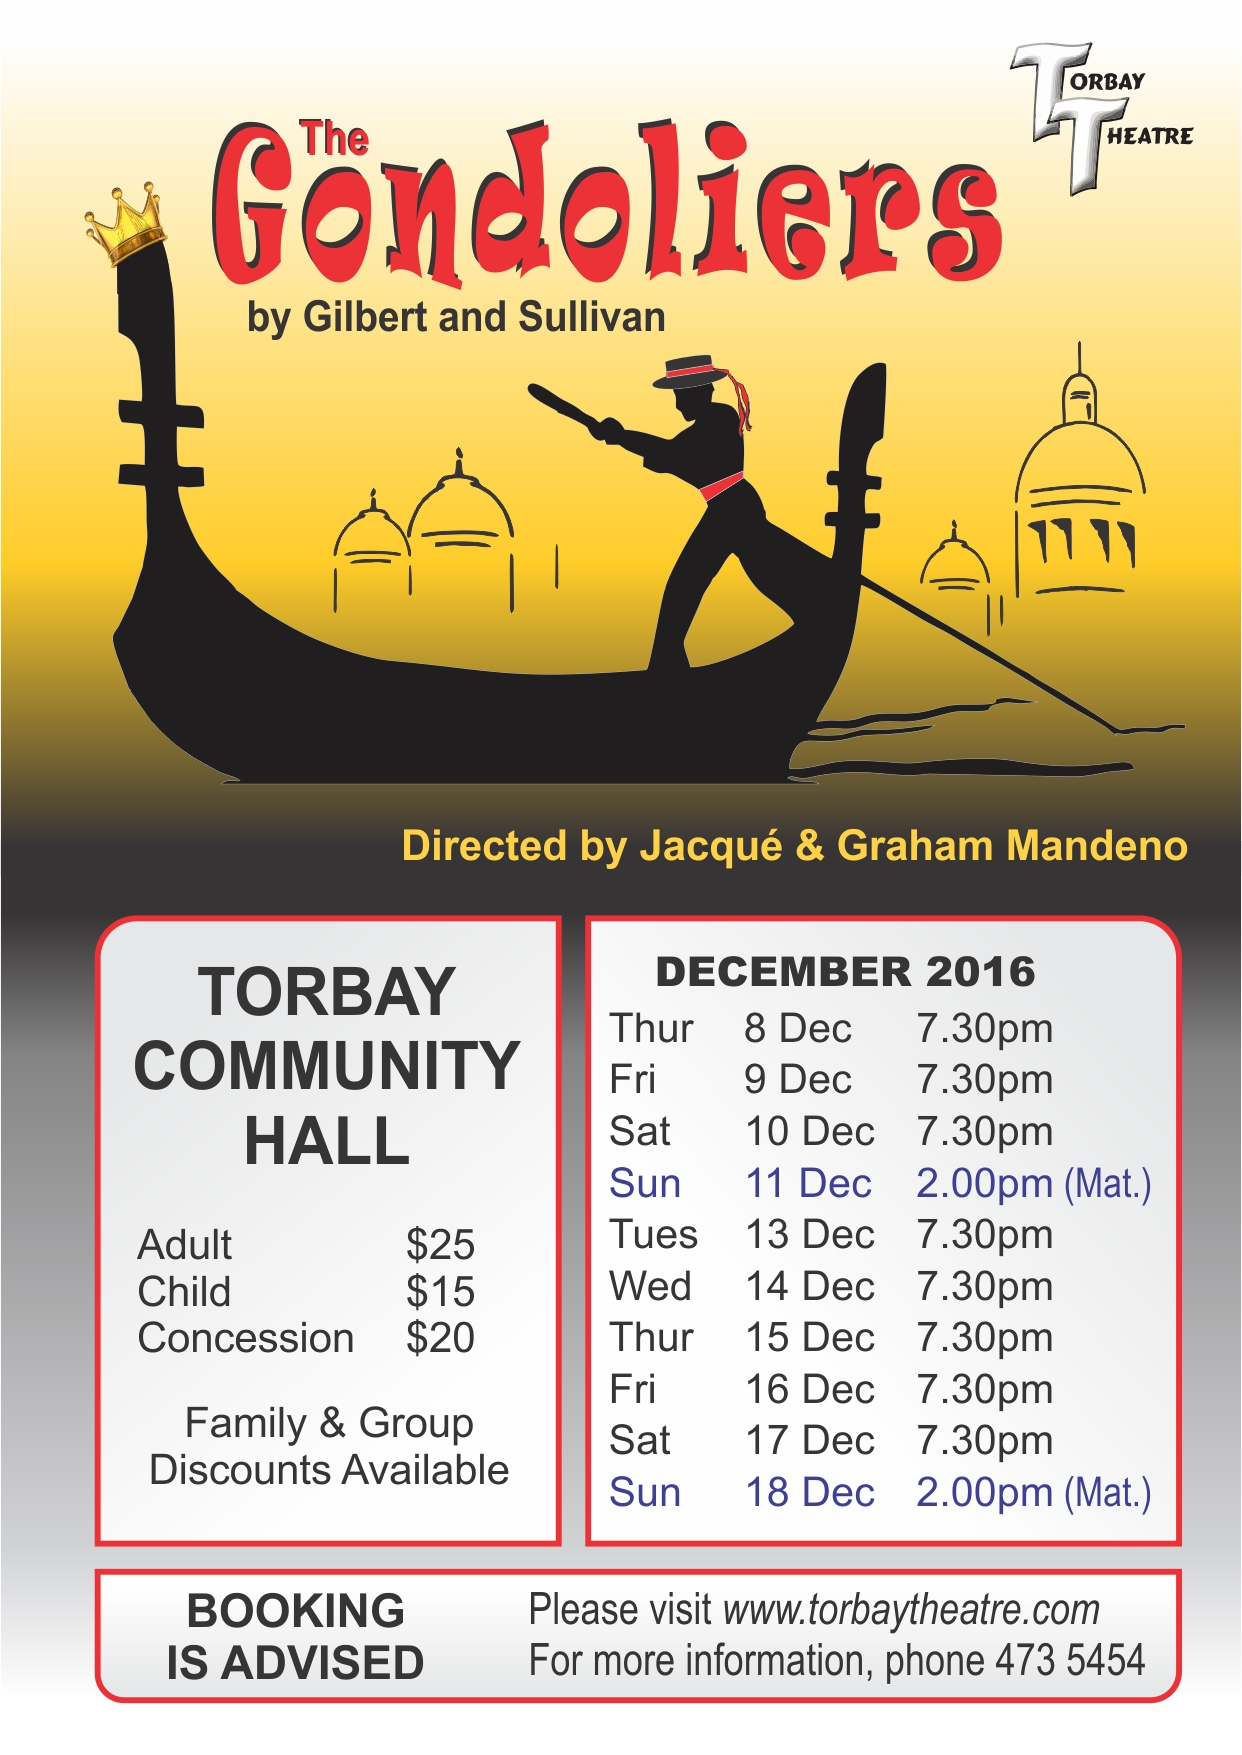 The Gondoliers by Gilbert and Sullivan Directedby Jacqué & Graham Mandeno Design by Tony Nettleton tony@netart.co.nz Print sponsored by Leo & Kyra Perwick Barfoot & Thompson Torbay, 473 8741 DECEMBER 2016 Thur 8 Dec 7.30pm Fri 9 Dec 7.30pm Sat 10 Dec 7.30pm Sun 11 Dec 2.00pm (Mat.) Tues 13 Dec 7.30pm Wed 14 Dec 7.30pm Thur 15 Dec 7.30pm Fri 16 Dec 7.30pm Sat 17 Dec 7.30pm Sun 18 Dec 2.00pm (Mat.) TORBAY COMMUNITY HALL  Adult $25 Child $15 Concession $20 Family & Group Discounts Available BOOKING IS ADVISED Please visit www.torbaytheatre.com For more information, phone 473 5454